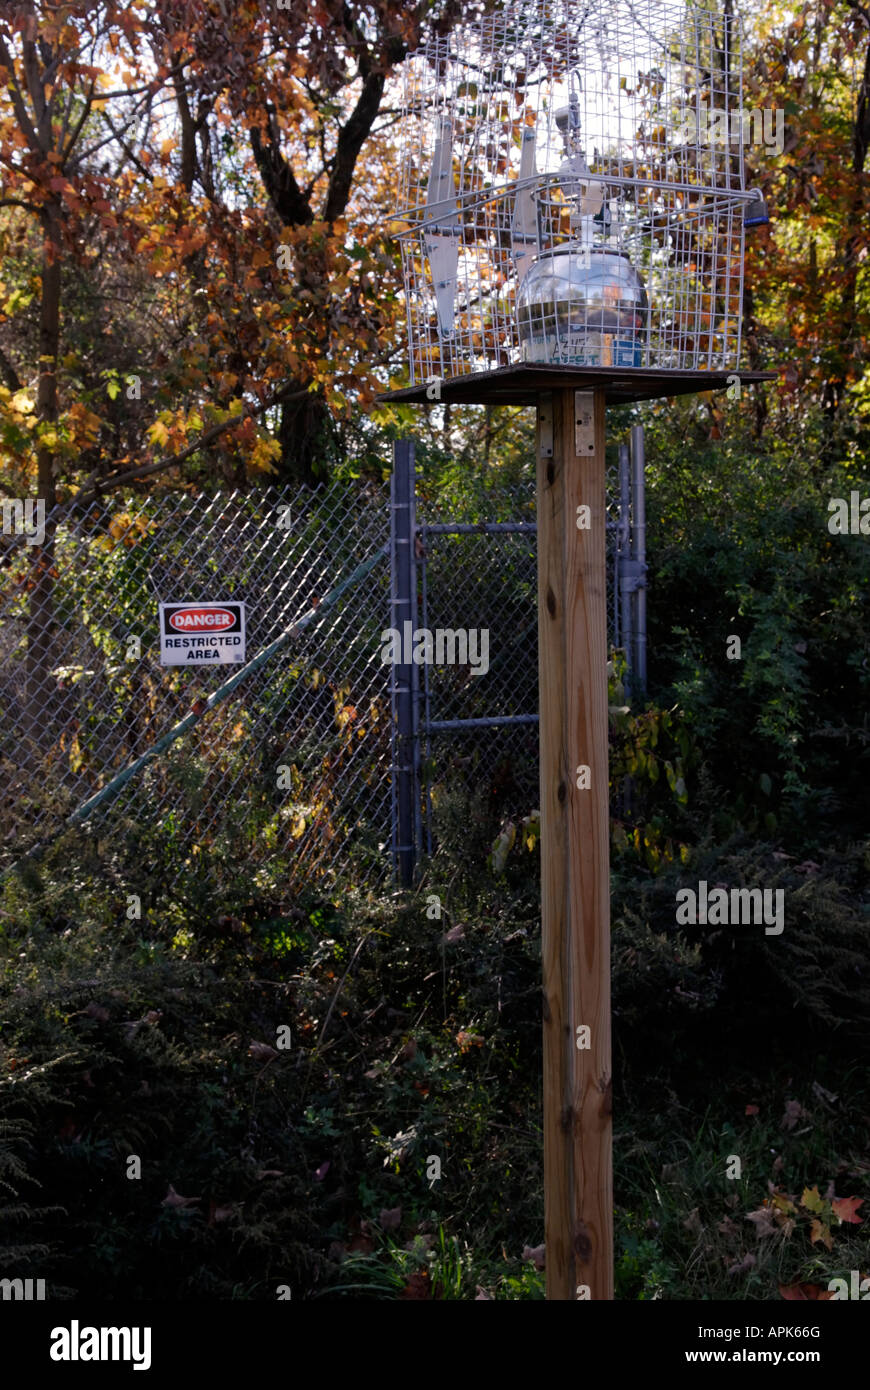 Air quality sampling station. The testing is to monitor VOC emissions from nearby toxic remediation work. - Stock Image